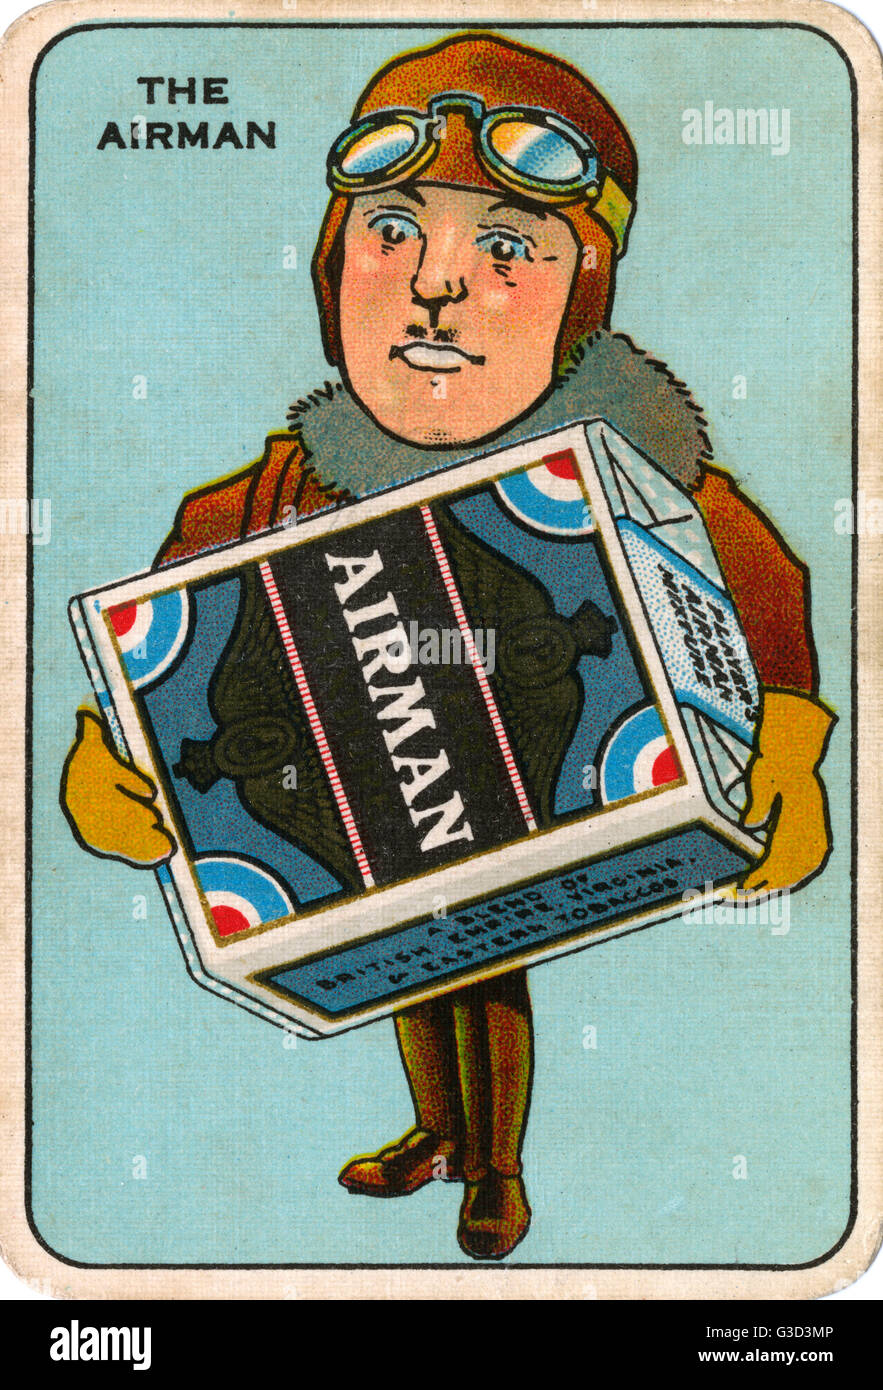 """Player's Navy Cut Snap Game - The Airman - holding a large pack of """"Airman"""" cigarettes    - Stock Image"""